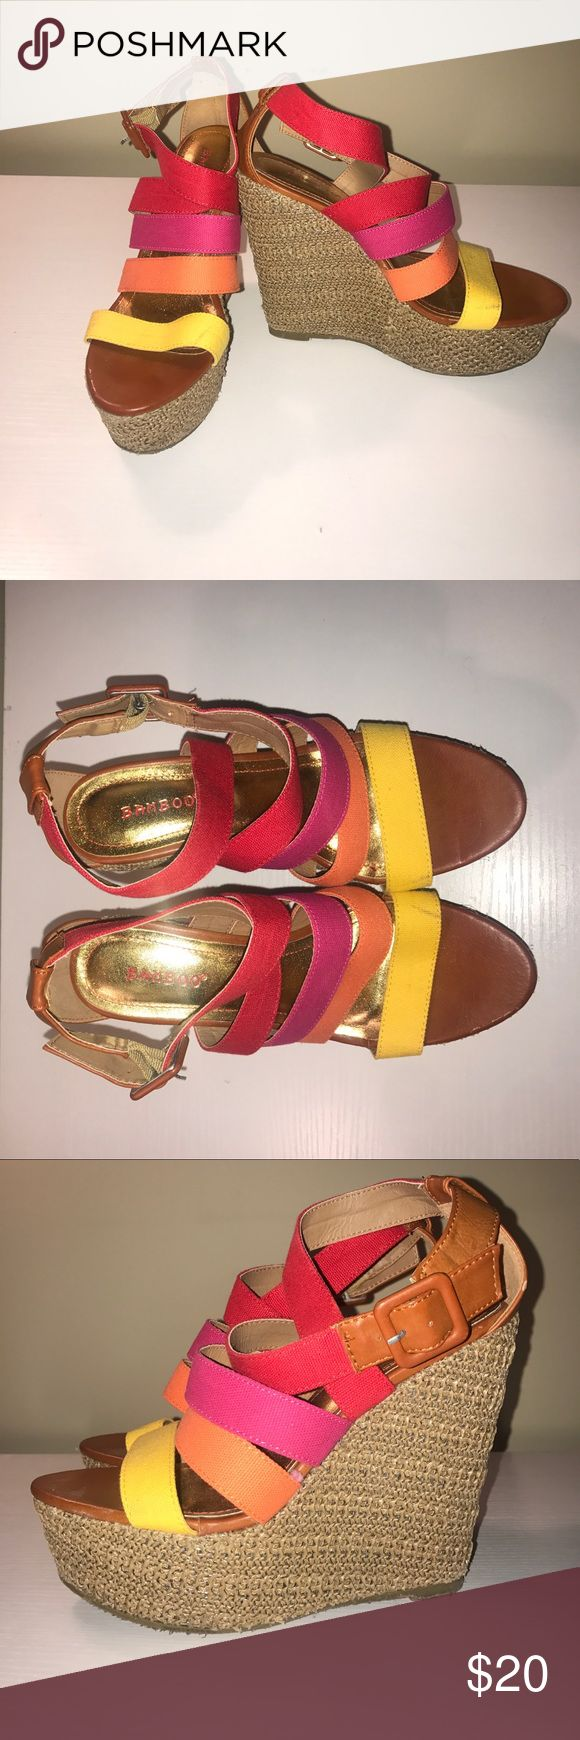 Multi-colored Wedges Worn maybe one time, in perfect condition! BAMBOO Shoes Wedges